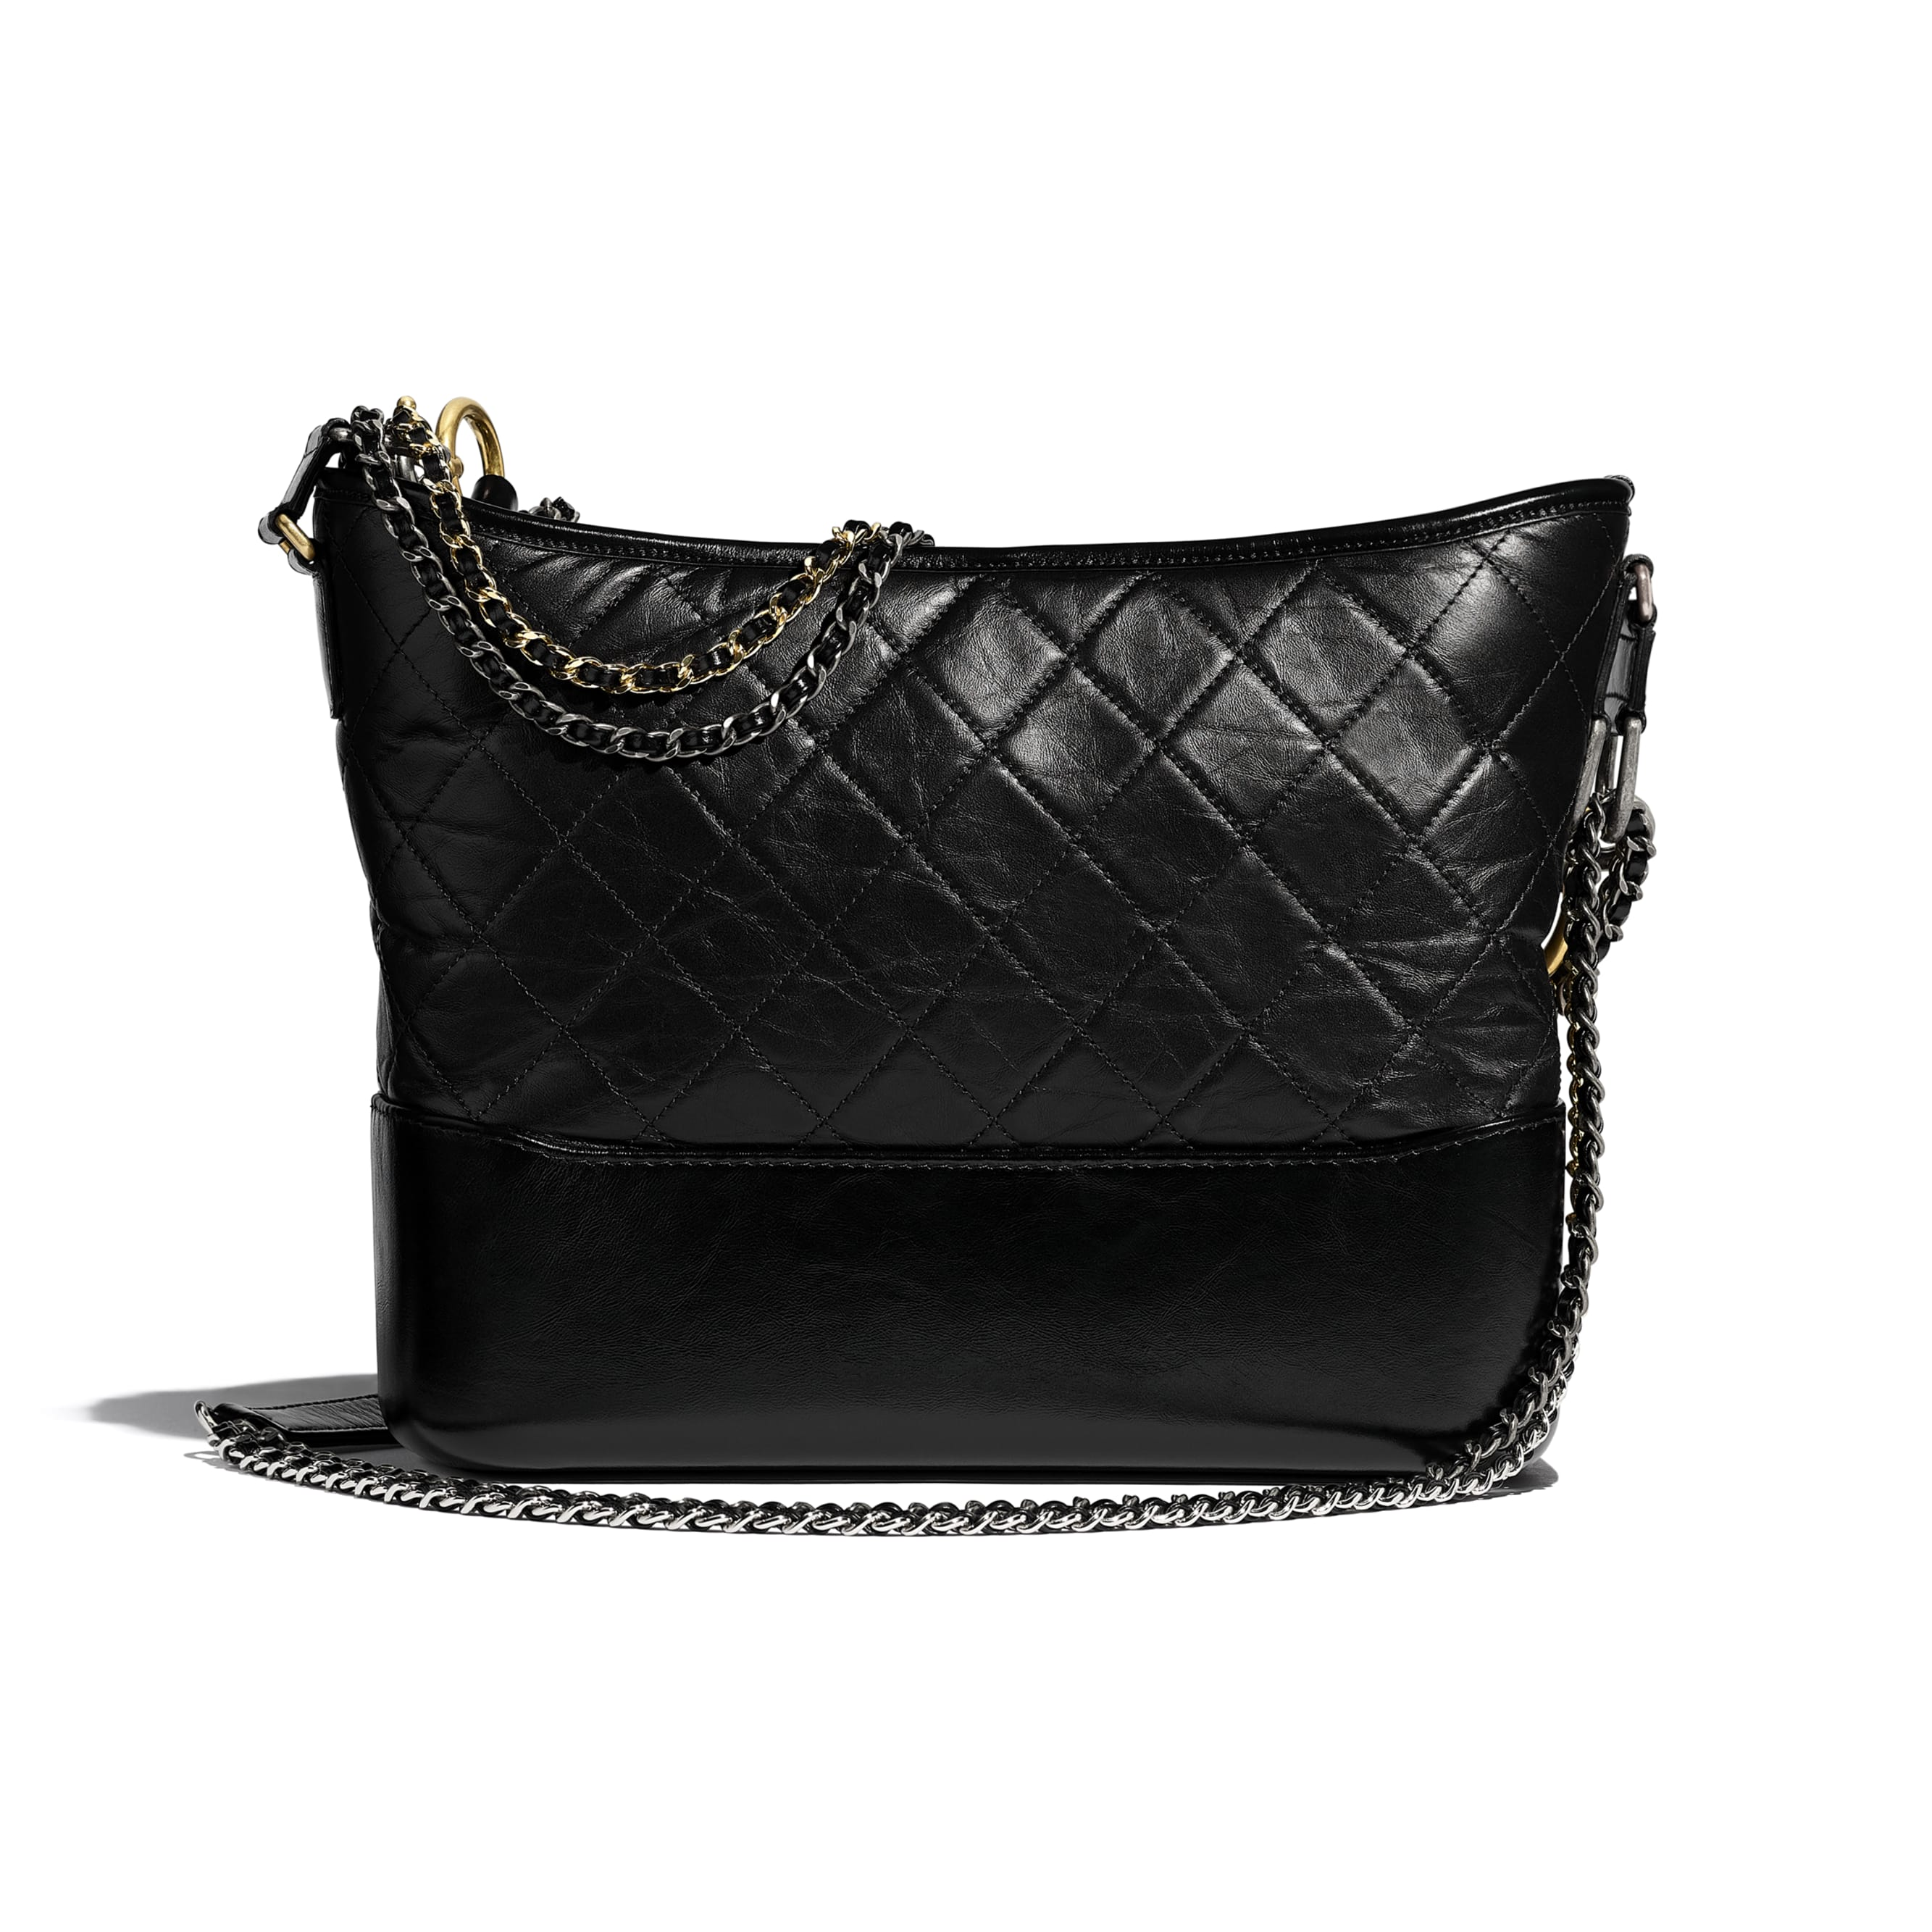 CHANEL'S GABRIELLE Large Hobo Bag - Black - Aged Calfskin, Smooth Calfskin, Gold-Tone & Silver-Tone Metal - Alternative view - see standard sized version